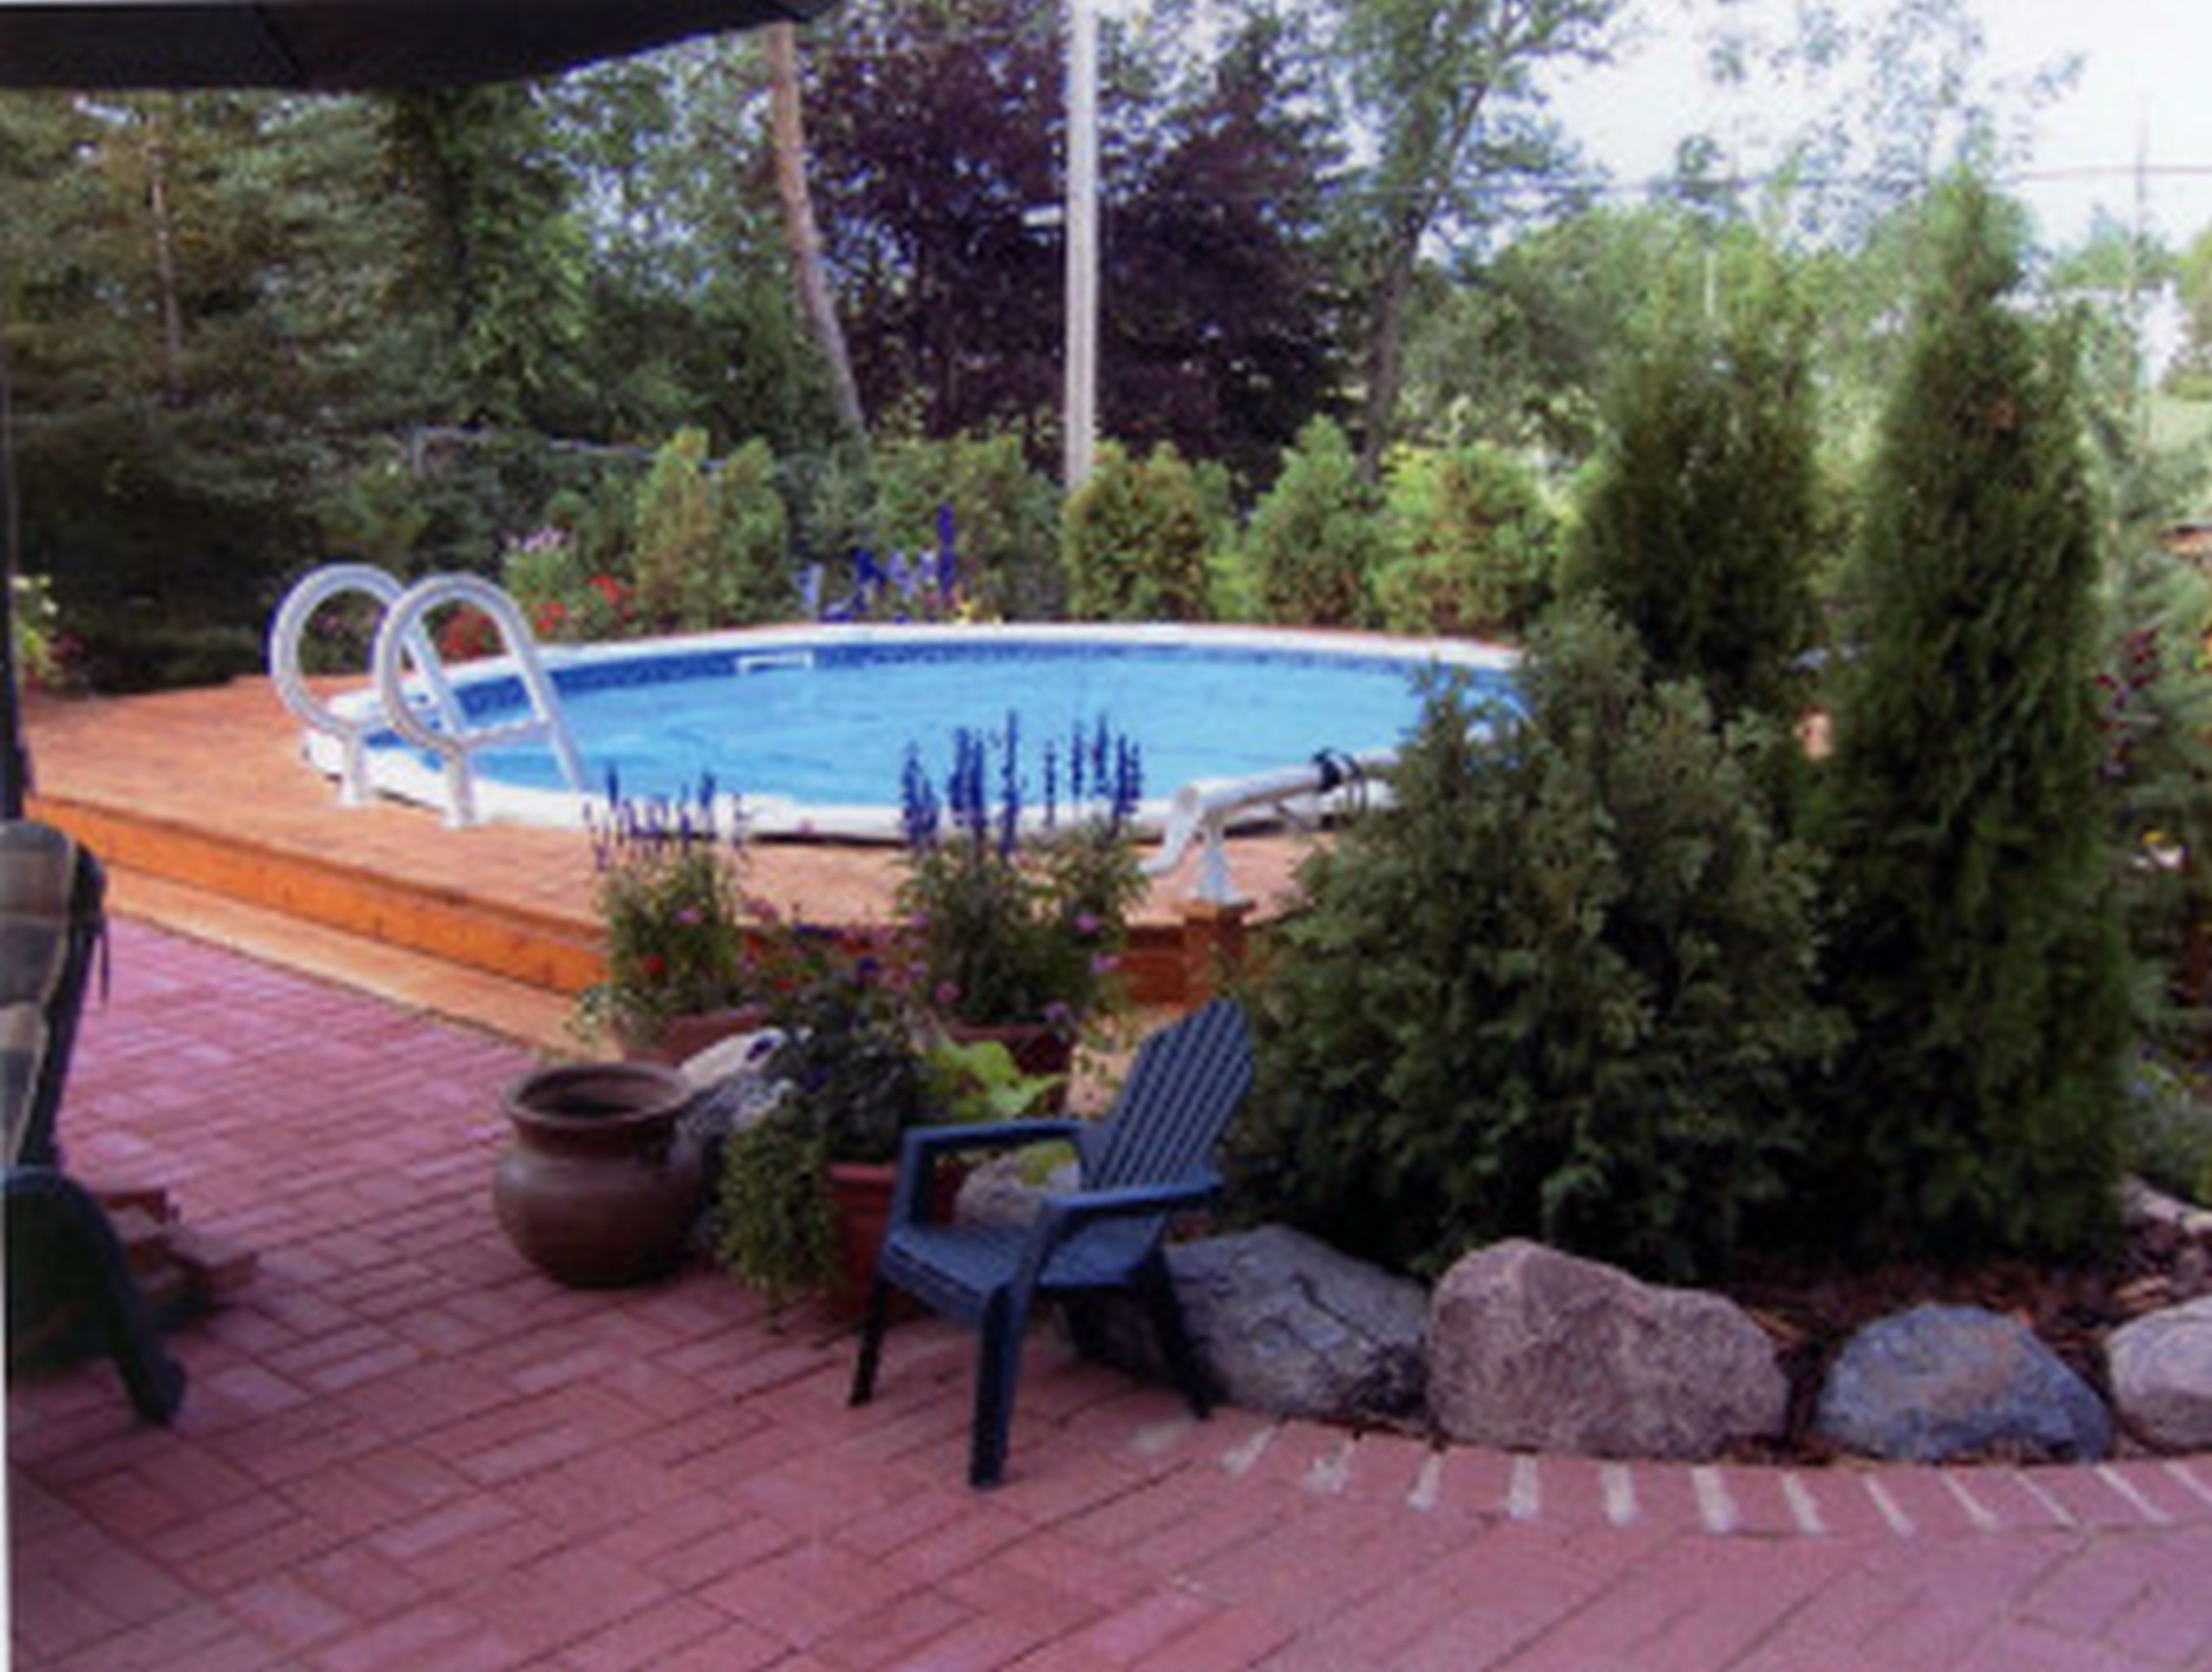 Above Ground Pool Landscaping4 Charming Landscaping Inspiration Prepossessing Landscape Ideas On